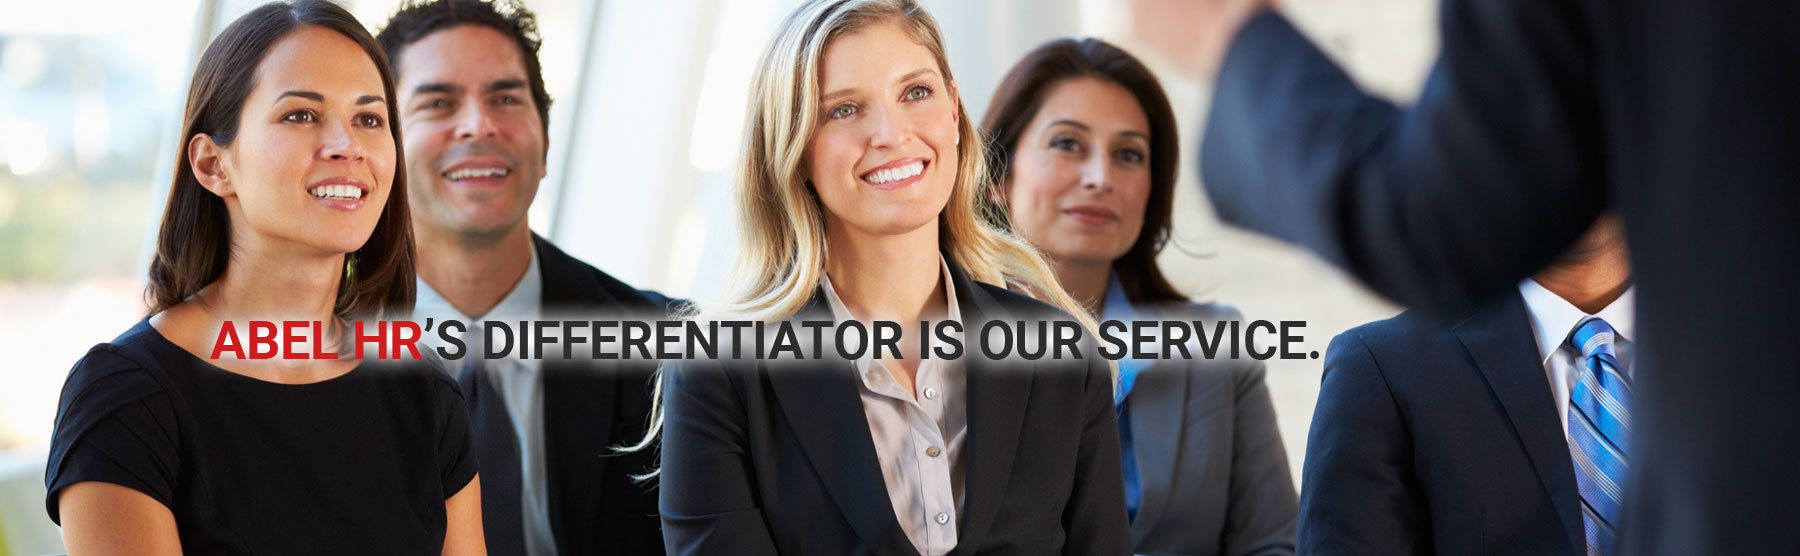 Abel HR's Differentiator is Our Service